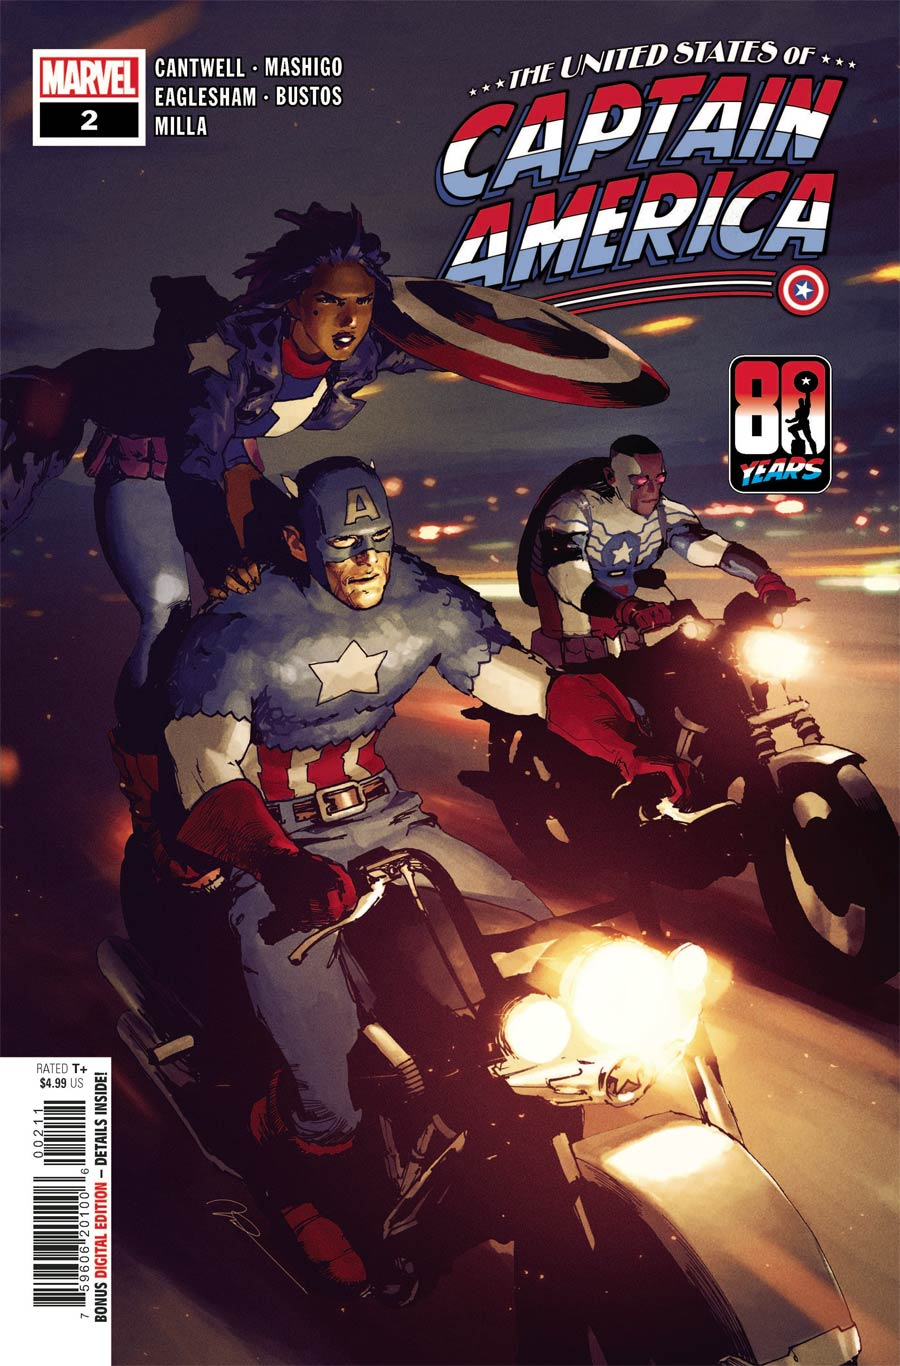 United States Of Captain America #2 Cover A Regular Gerald Parel Cover (Limit 1 Per Customer)